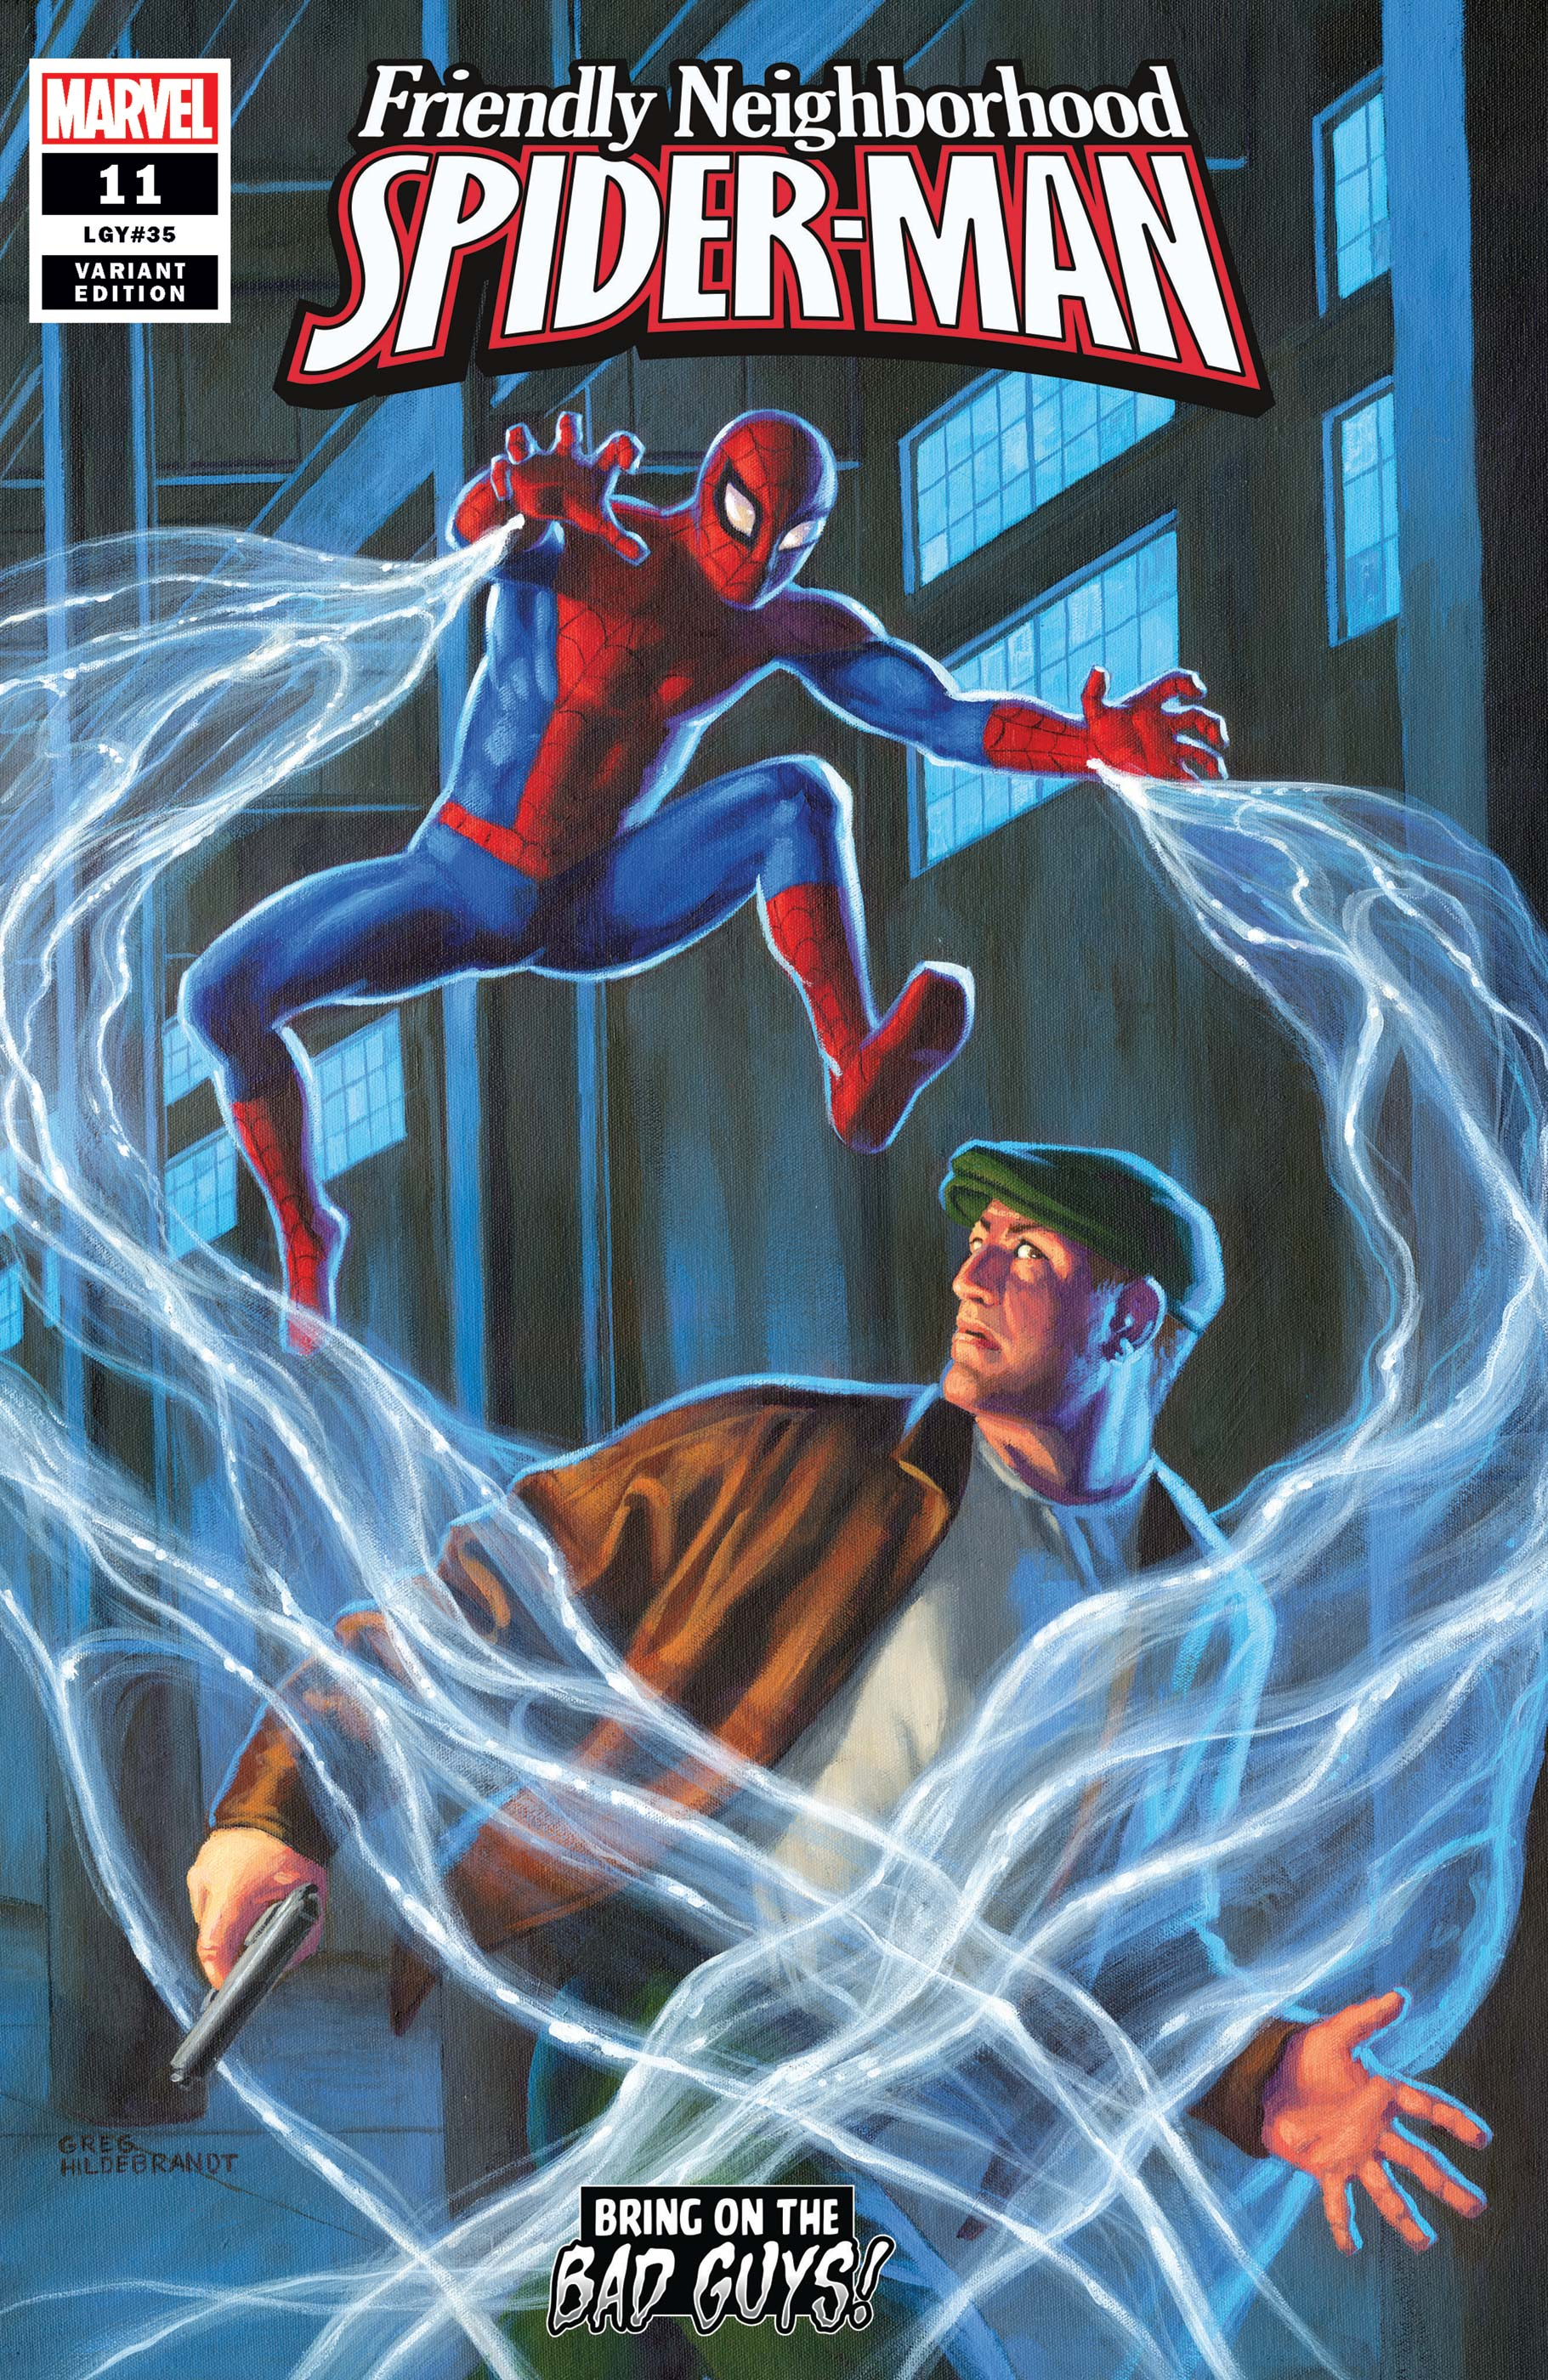 Friendly Neighborhood Spider-Man (2019) #11 (Variant)